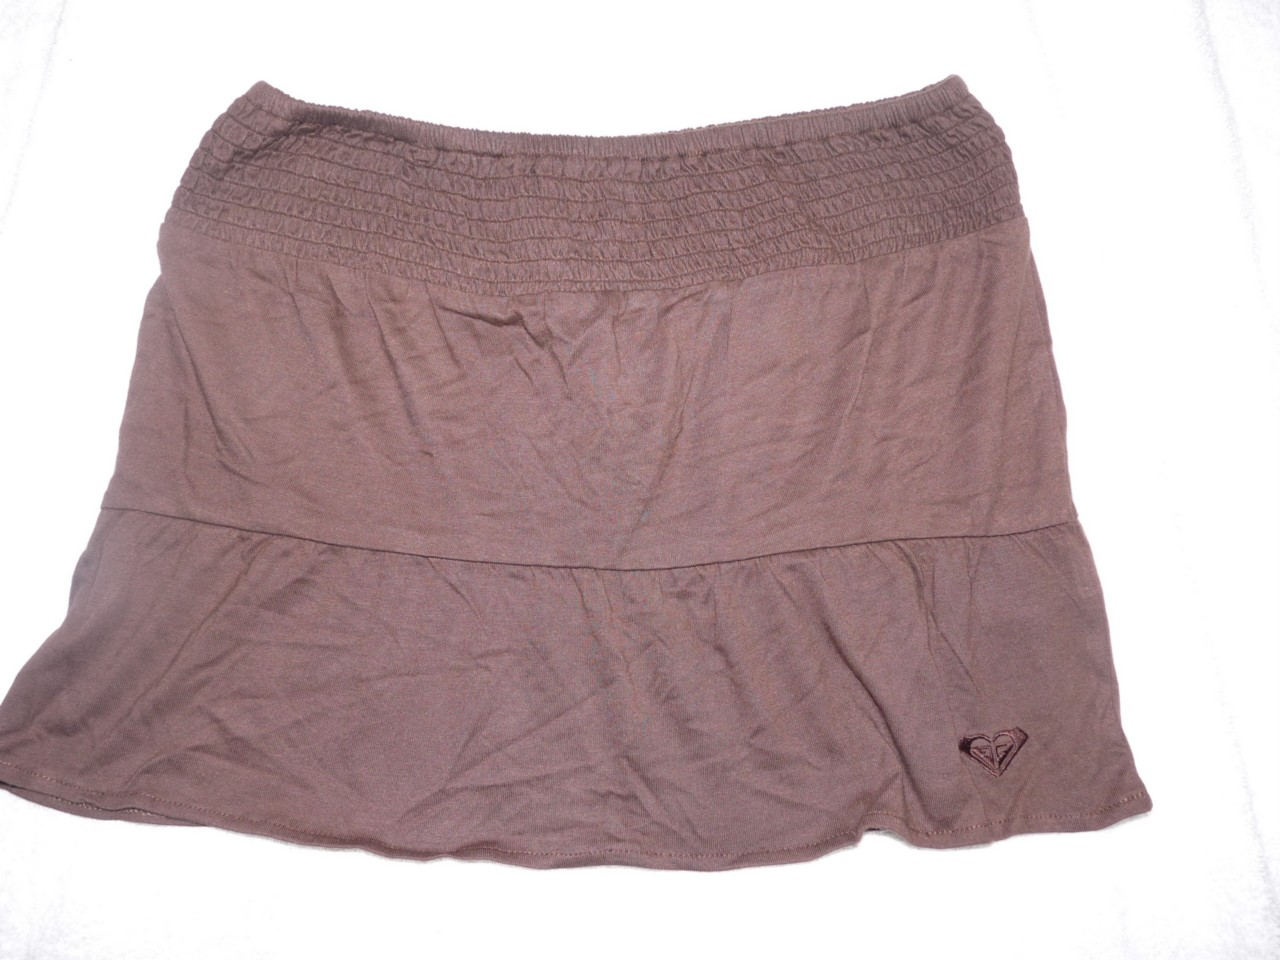 COFFEE-ROXY-FUNSHINE-SKIRT-BNWT-MEDIUM-X-LARGE